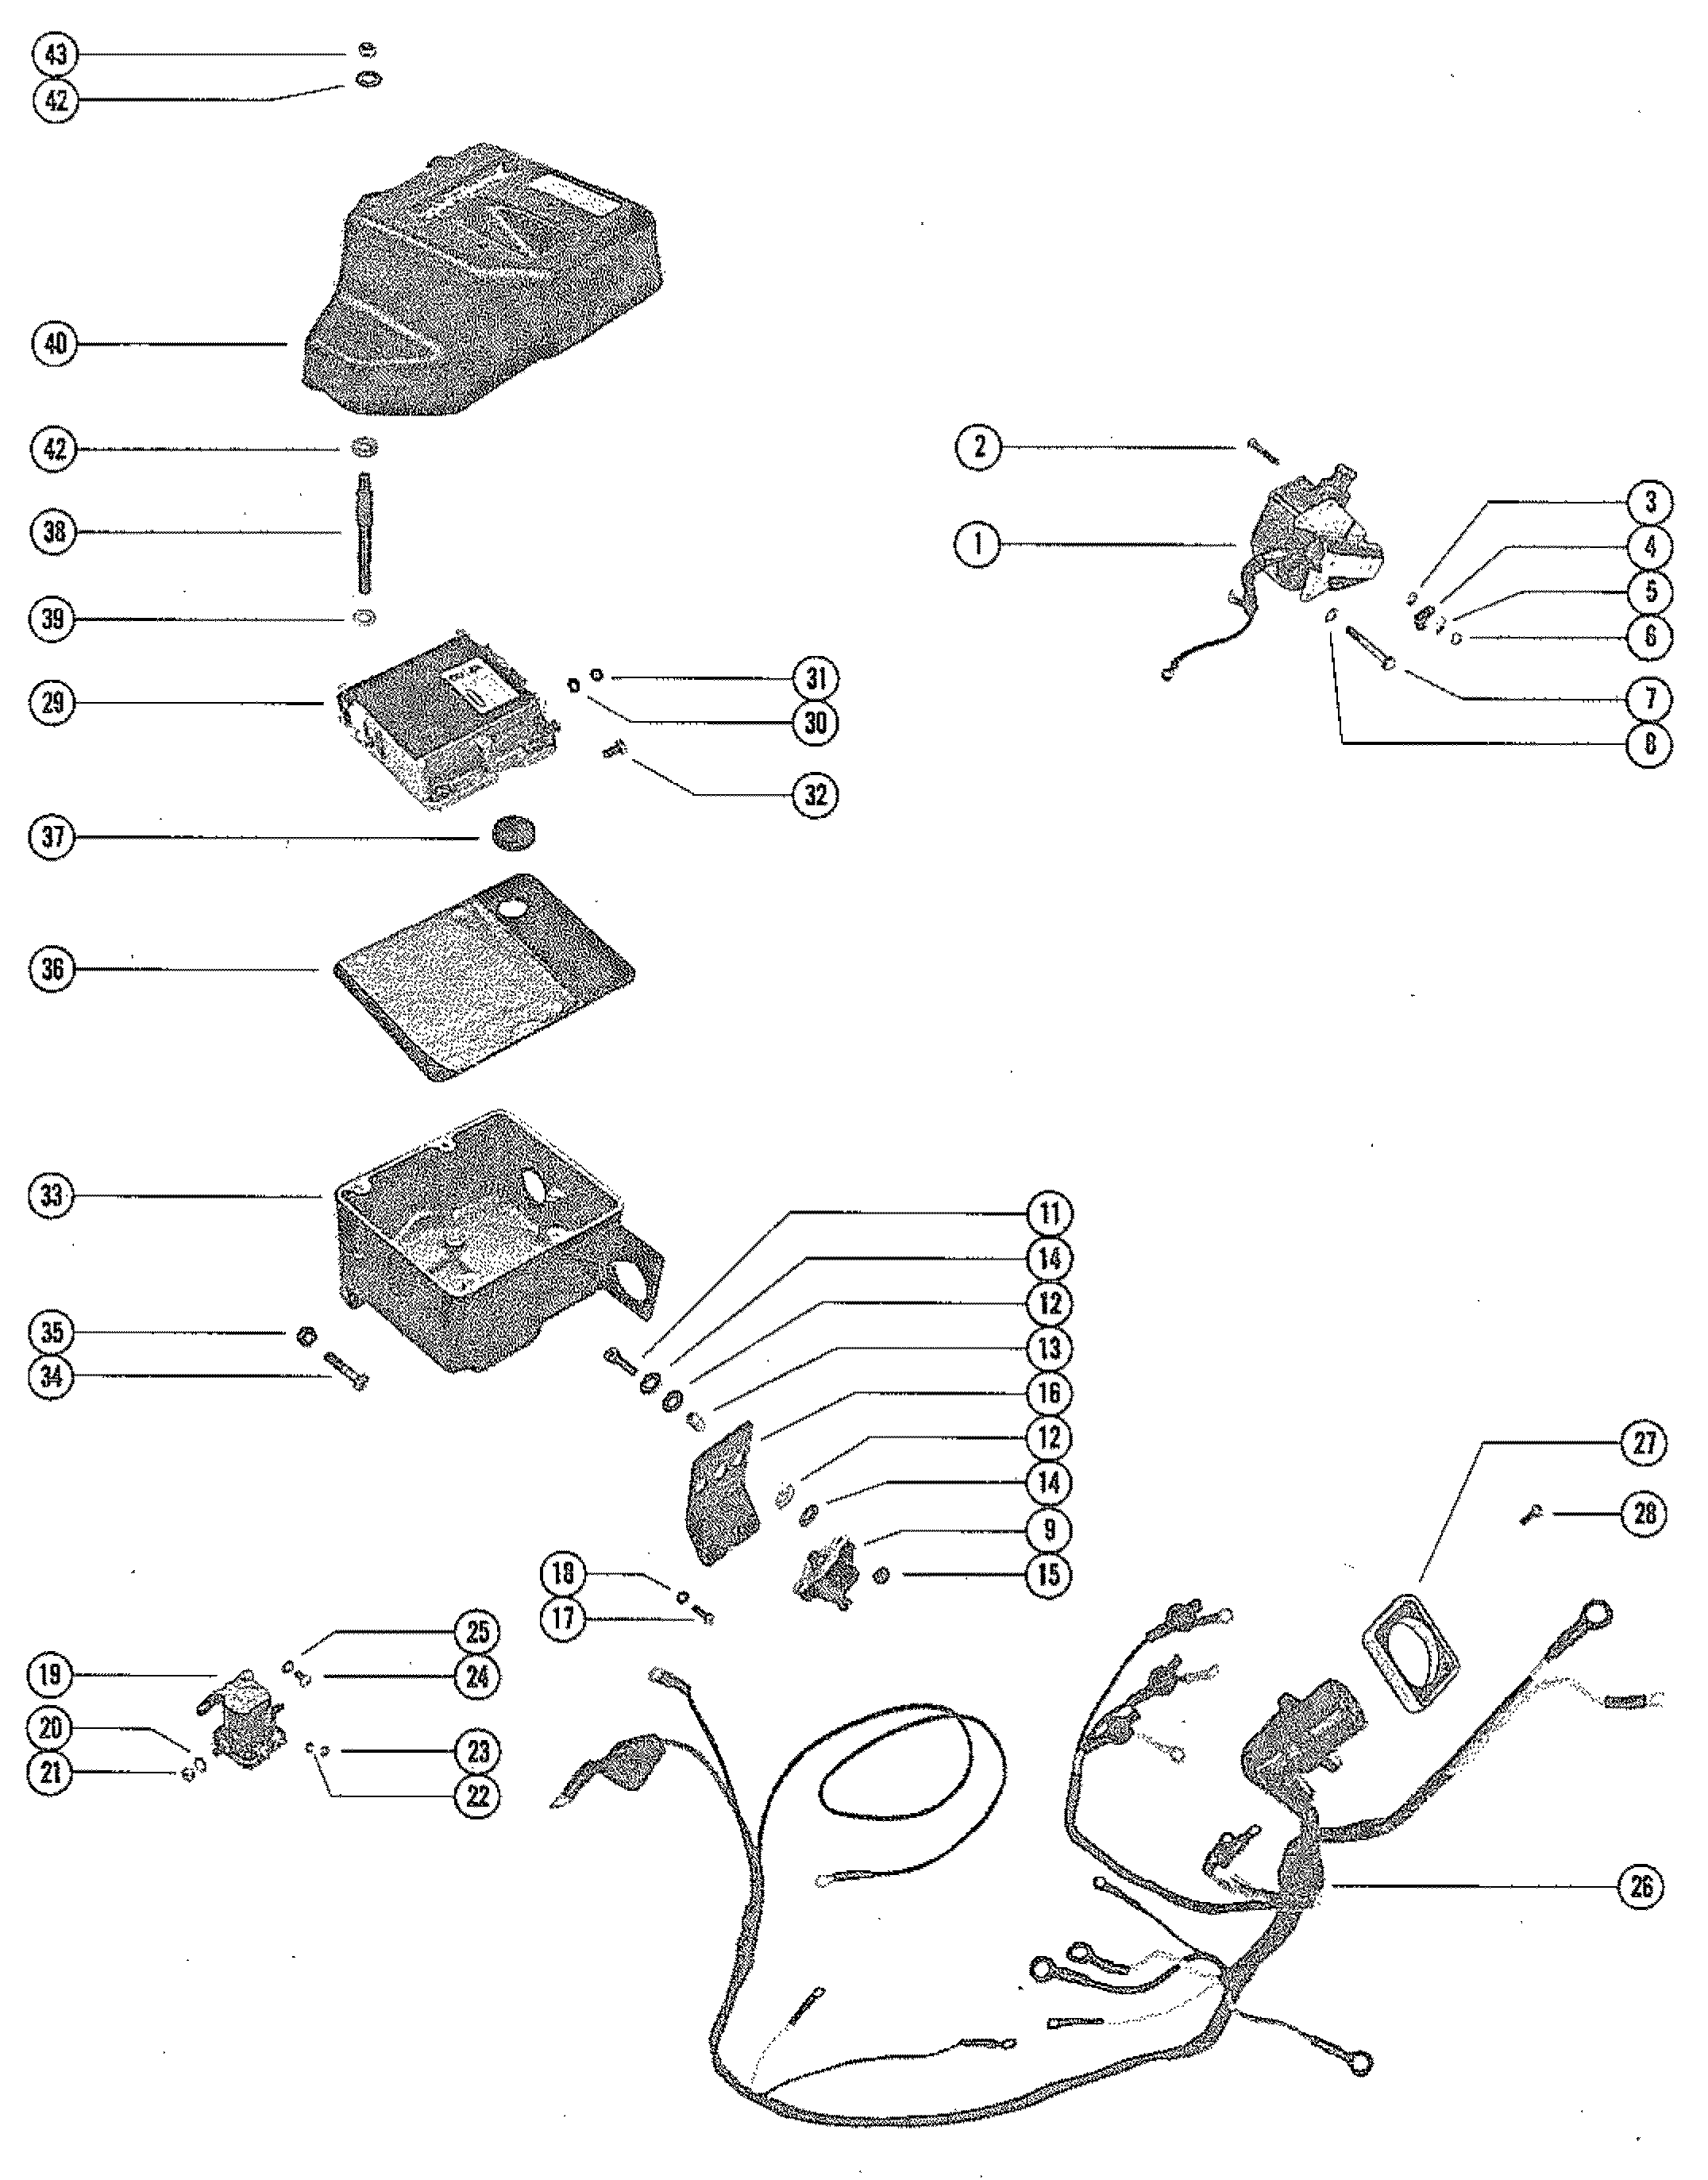 Mercruiser 330 Mie Gm 454 V 8 1977 1980 1996 Mercury 115 Outboard Wiring Diagram Harness Switch Box And Ignition Coil